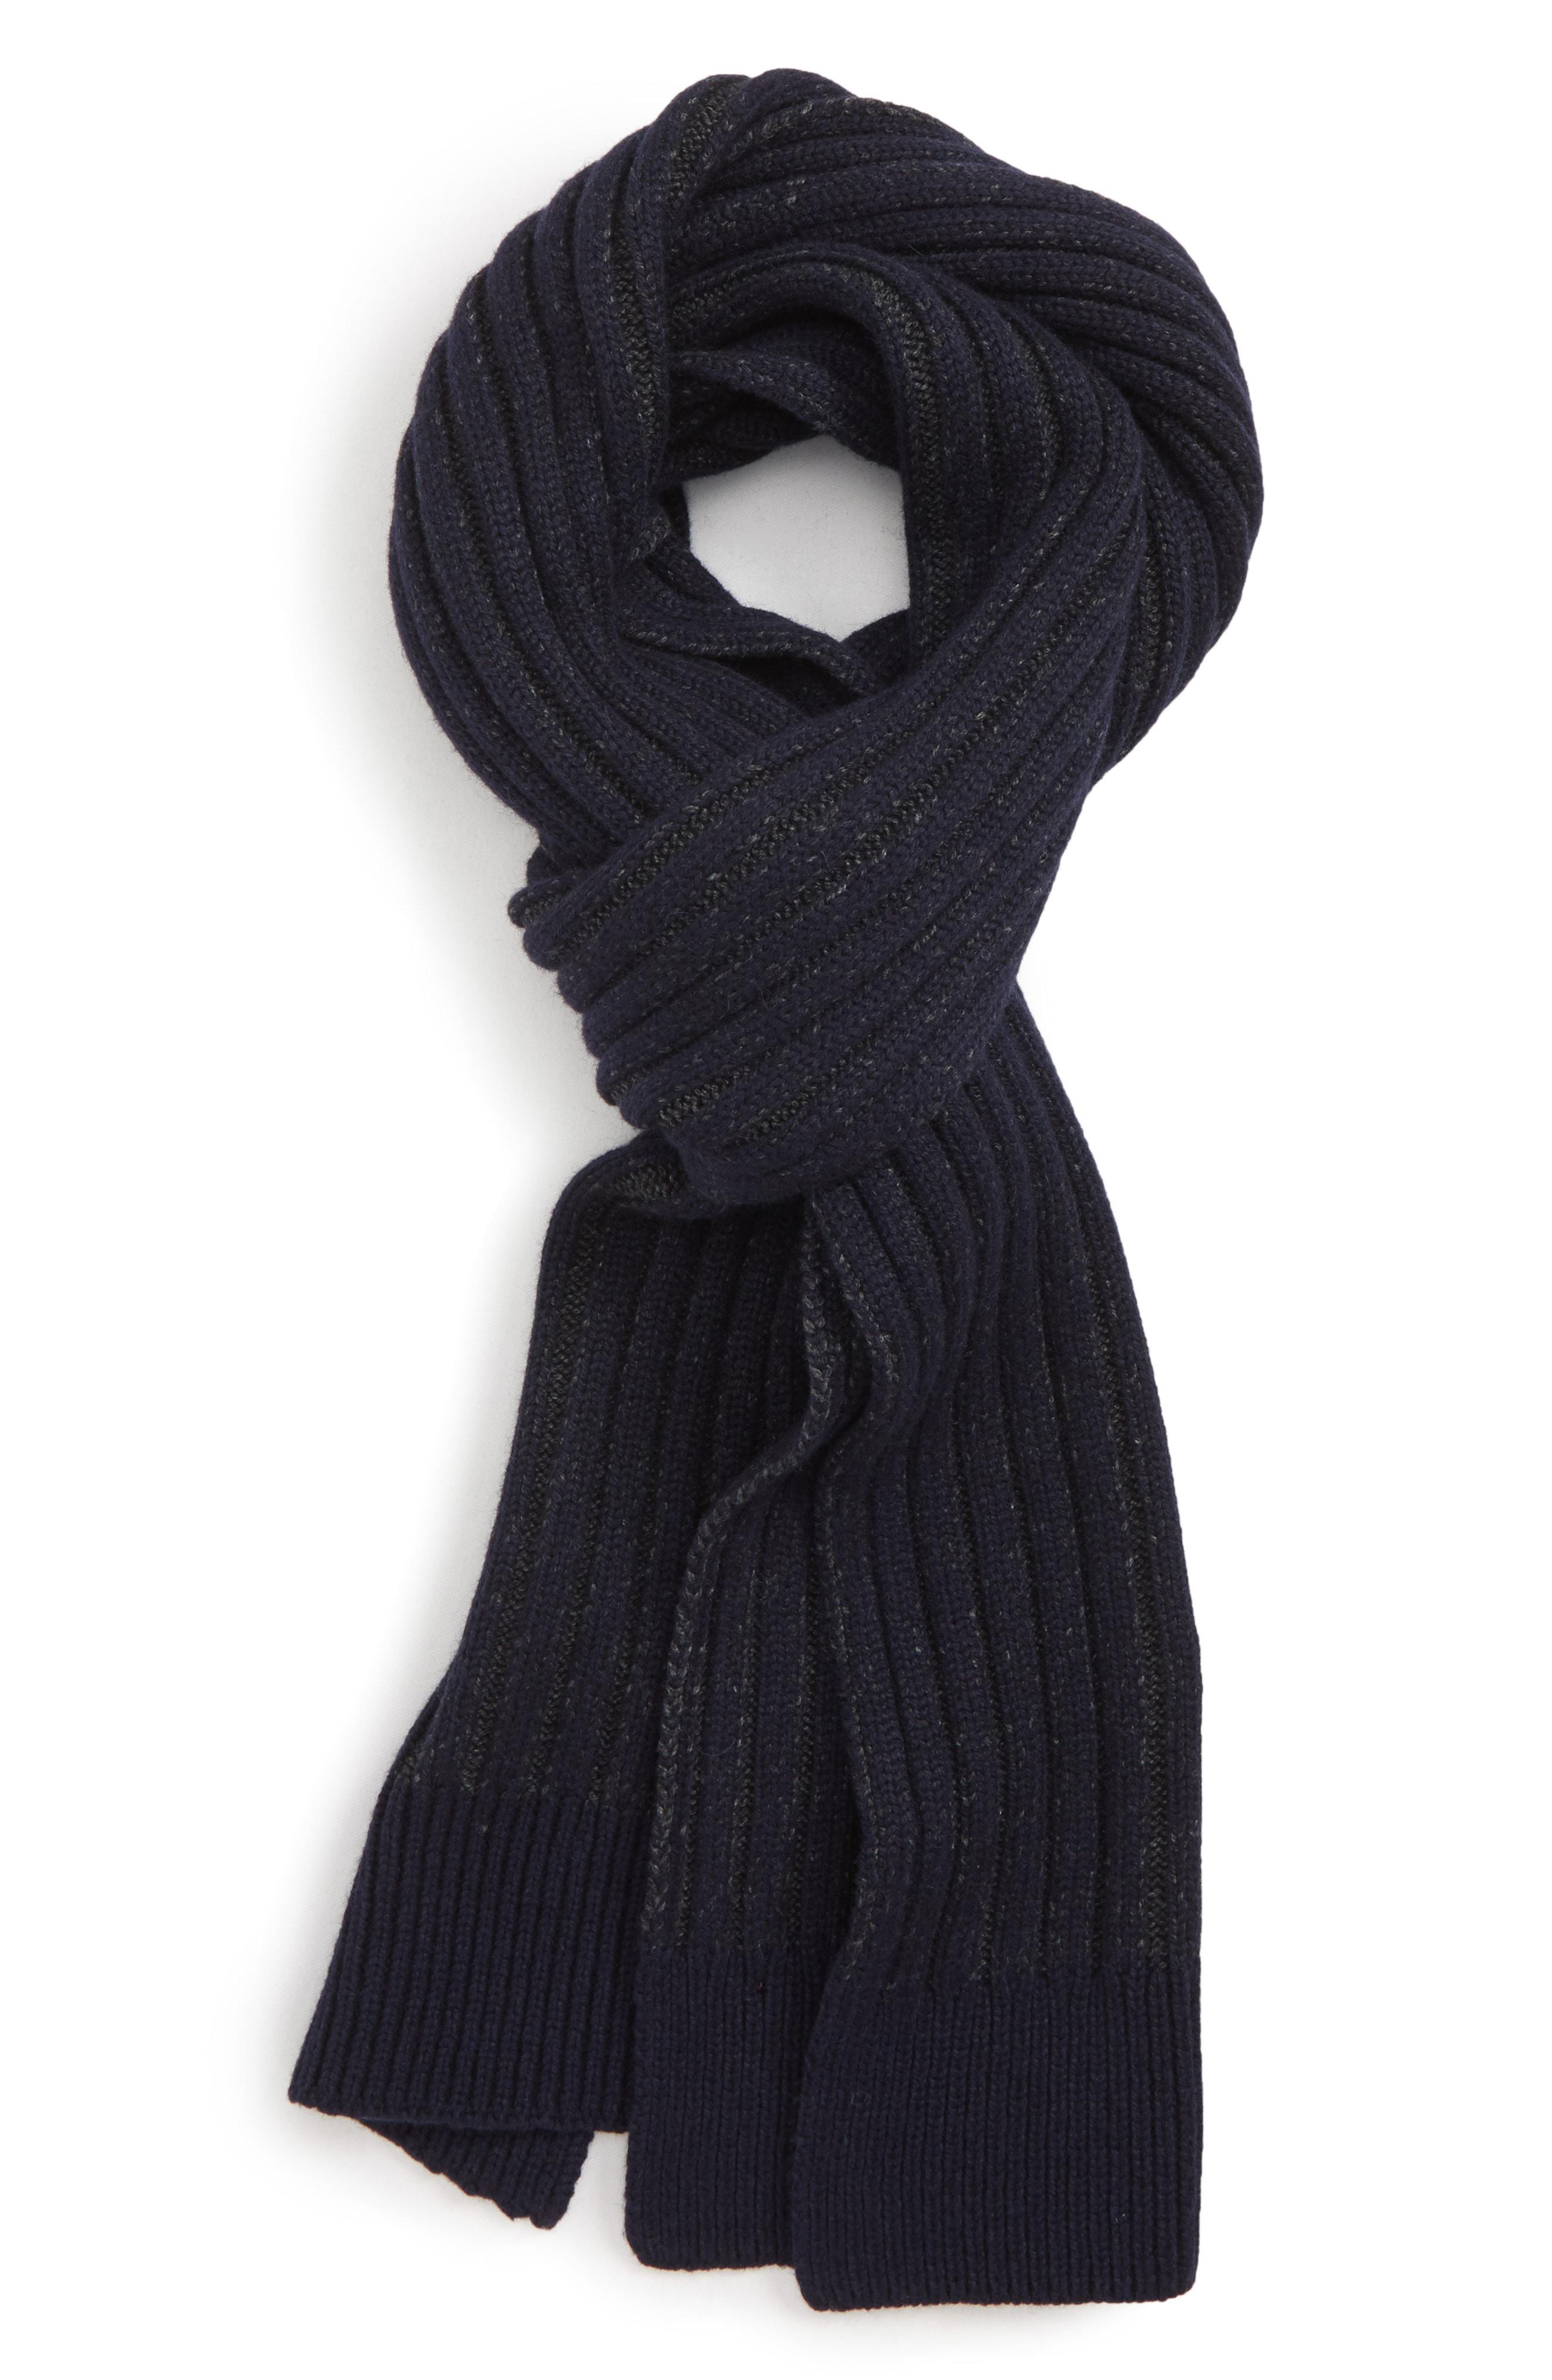 875a897bc702 Lyst - Ted Baker Plaited Chunky Scarf in Blue for Men - Save ...